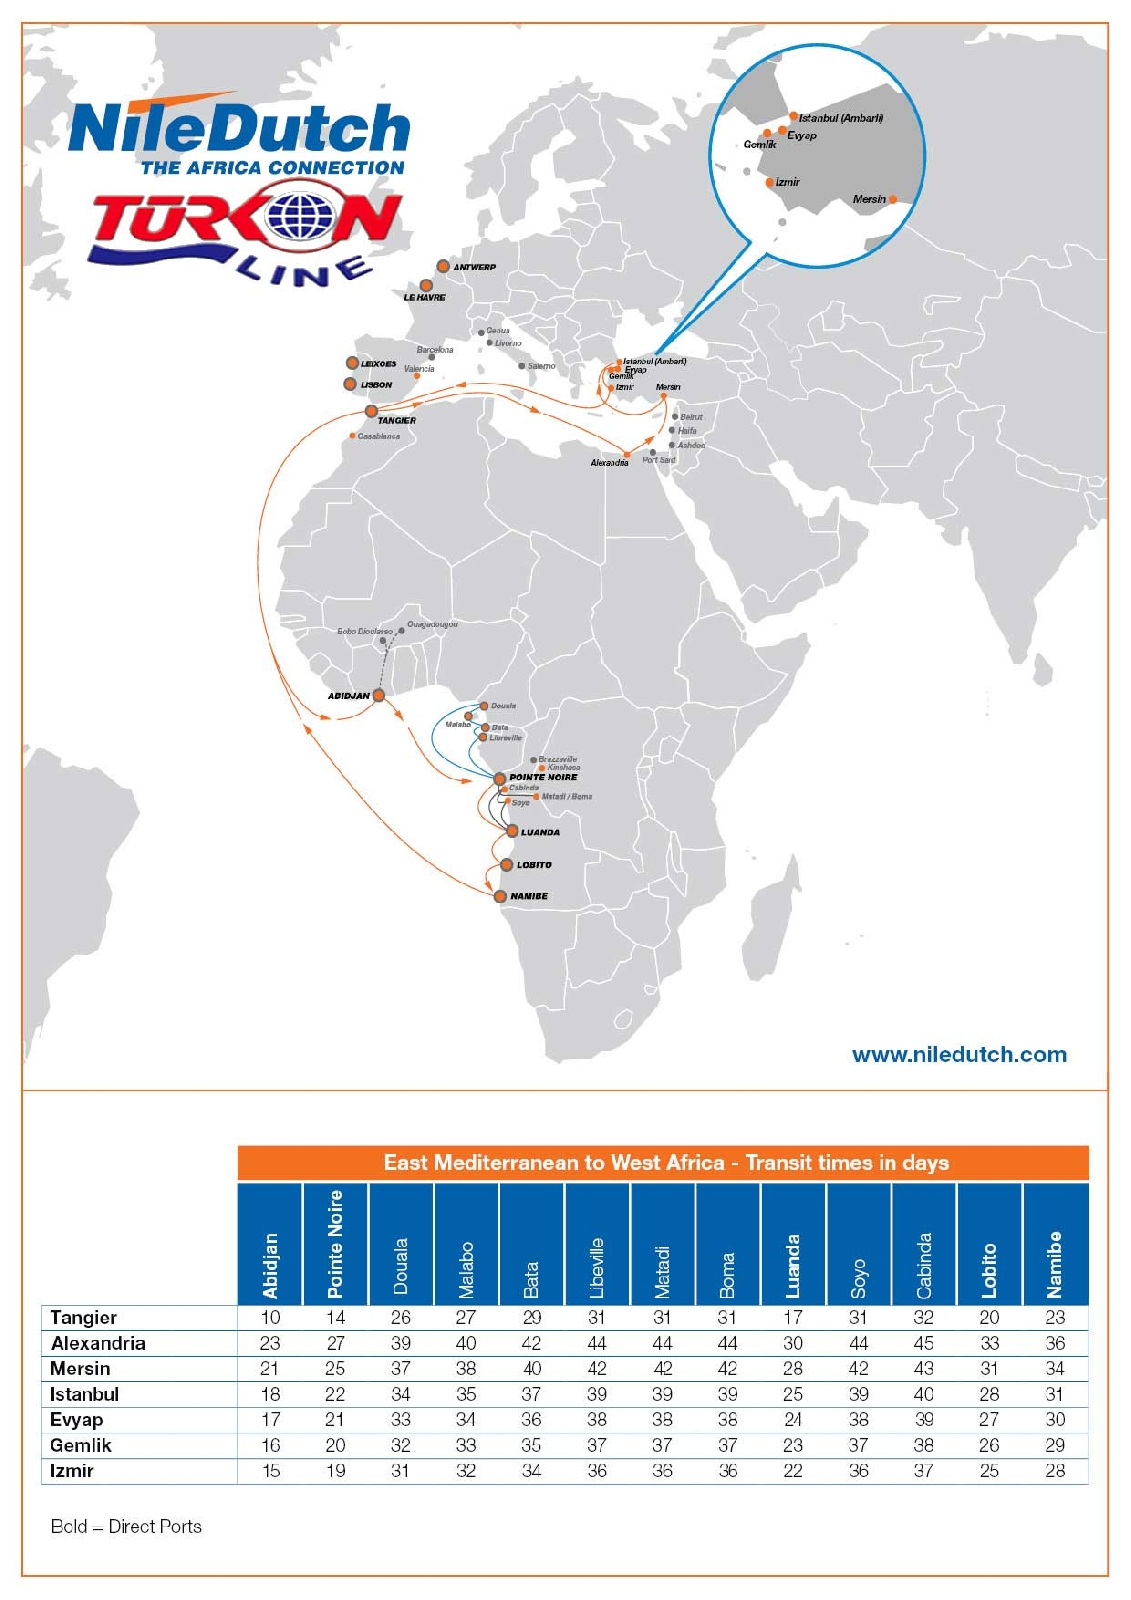 NileDutch and TURKON launch new service from US east coast to West Africa